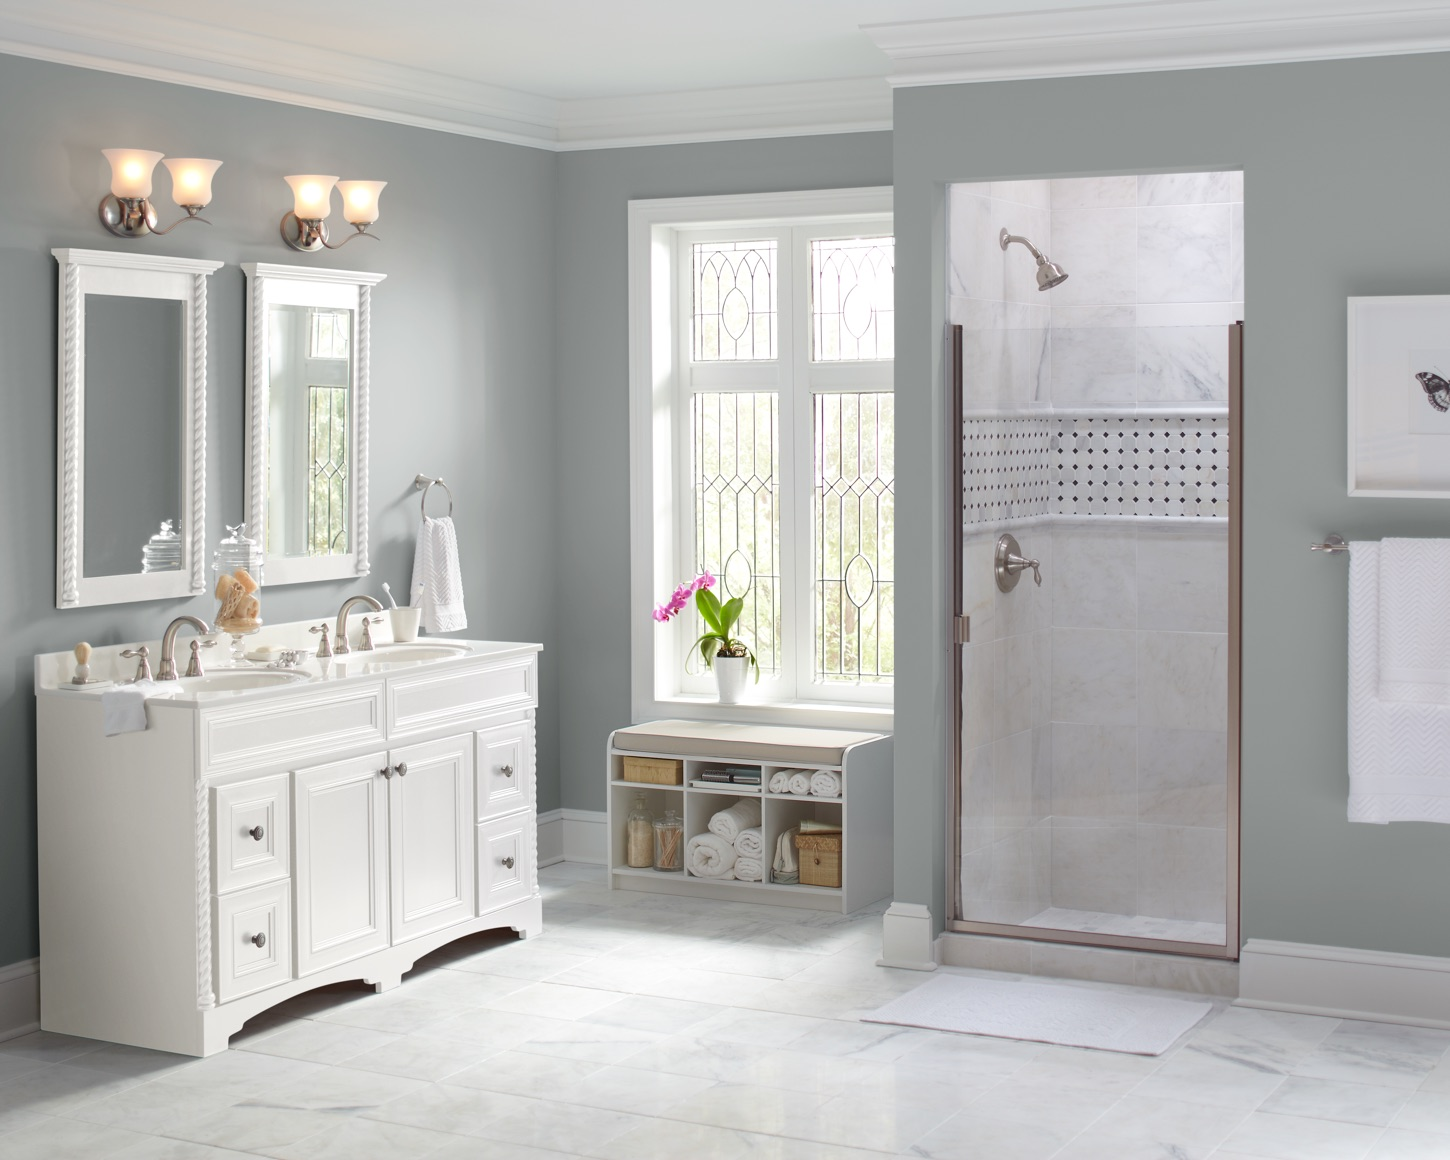 4 ways to display your bath towels - hotpads blog